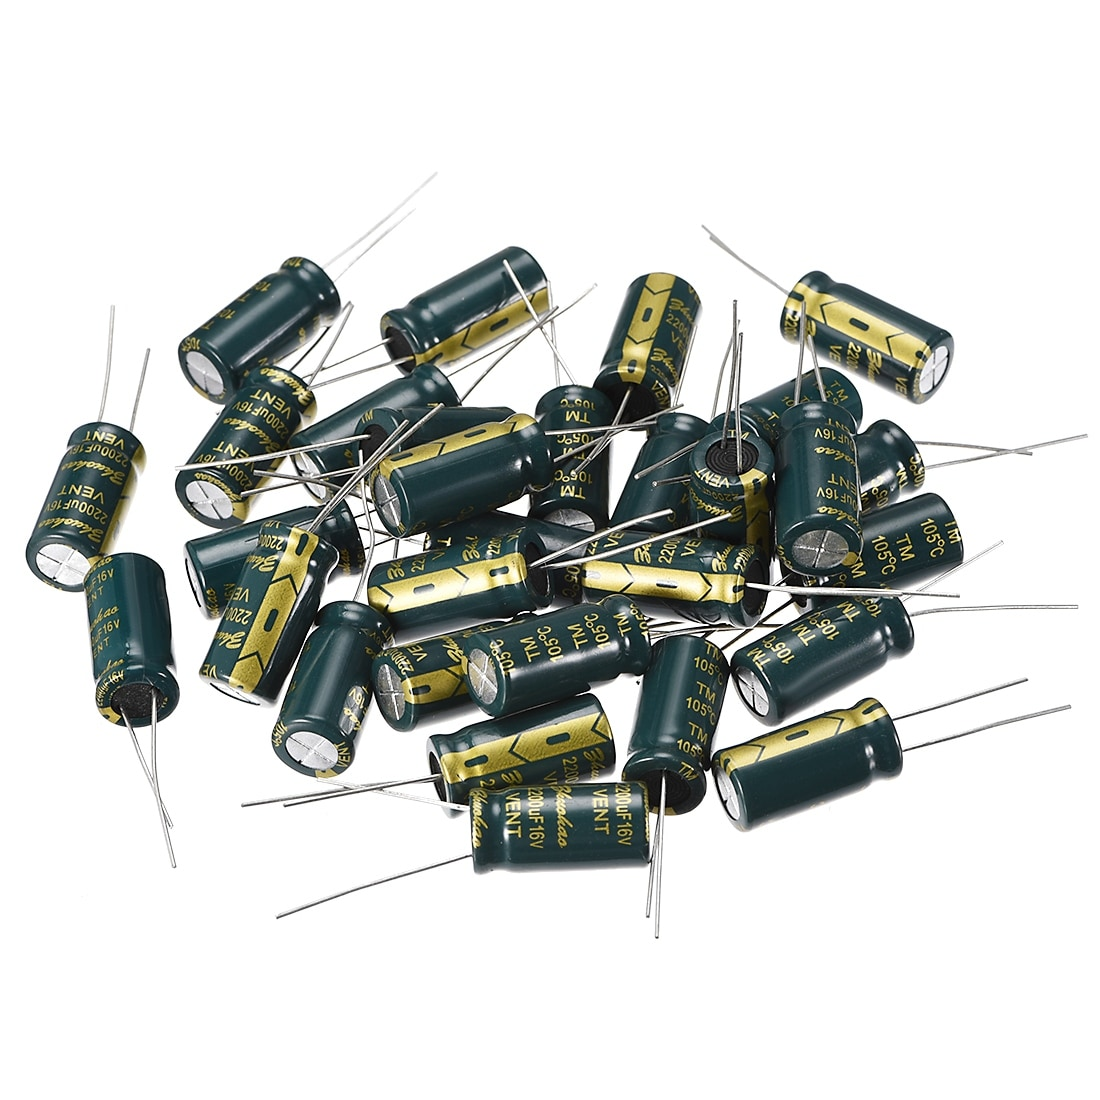 10 PCS 2200UF//10V Radial Electrolytic Capacitors 10x20mm 10V 2200UF 105°C